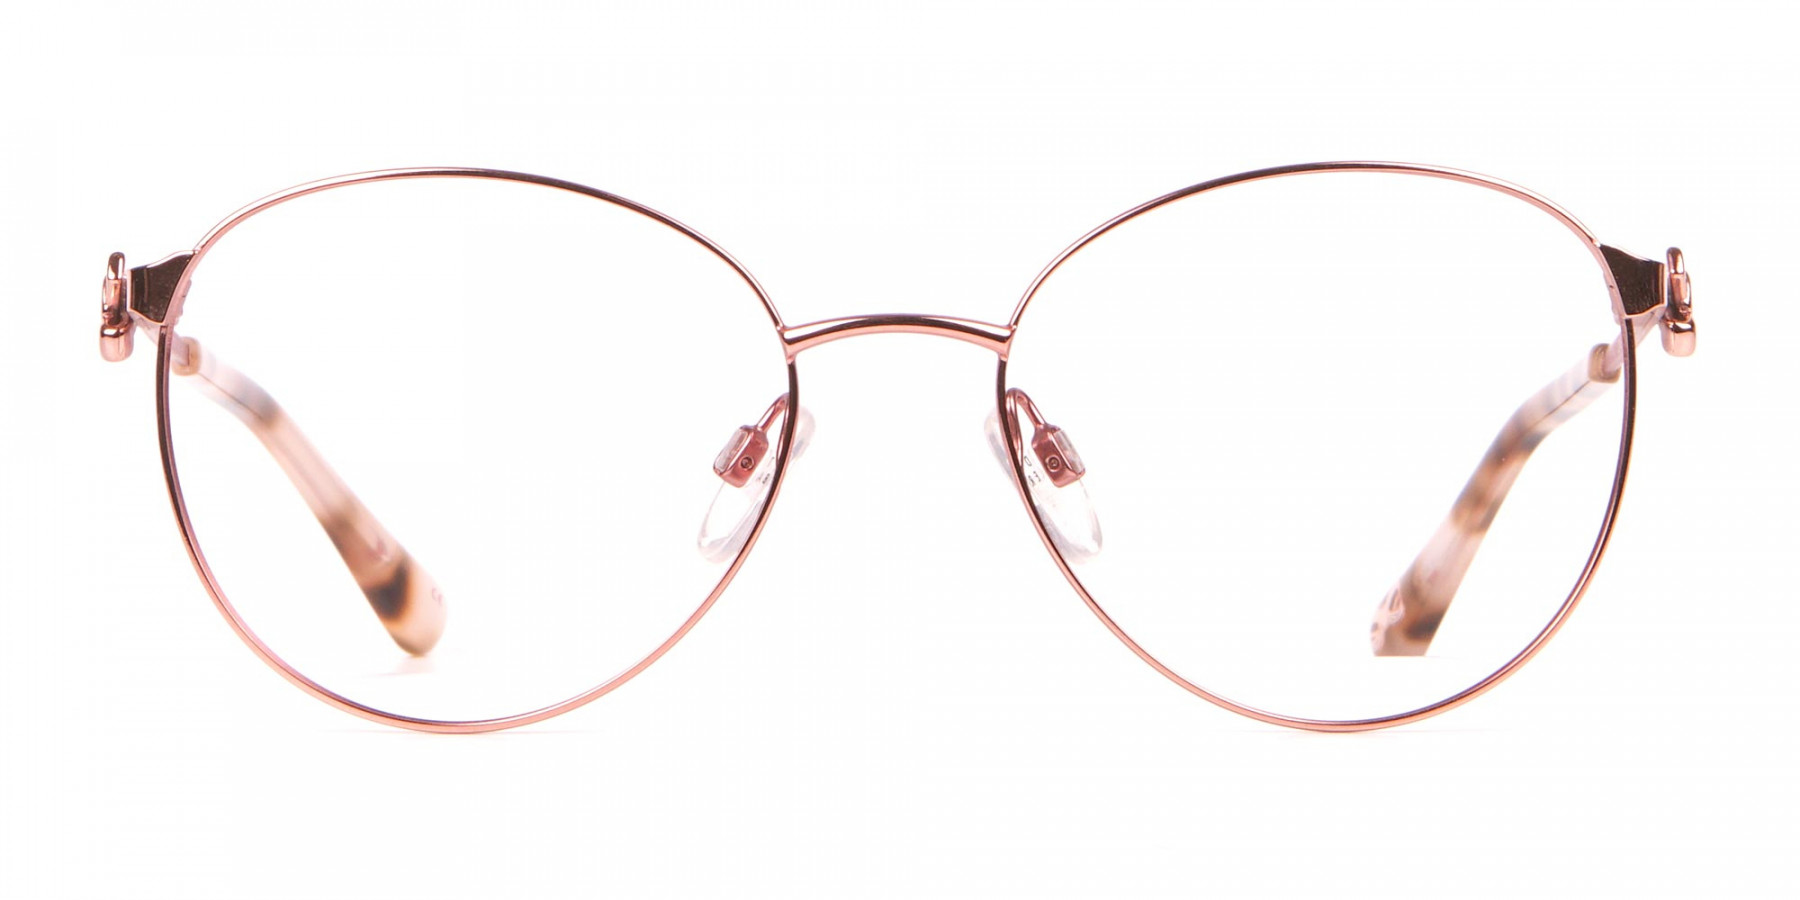 Ted Baker TB2243 Rosegold Round Metal Glasses Women -1